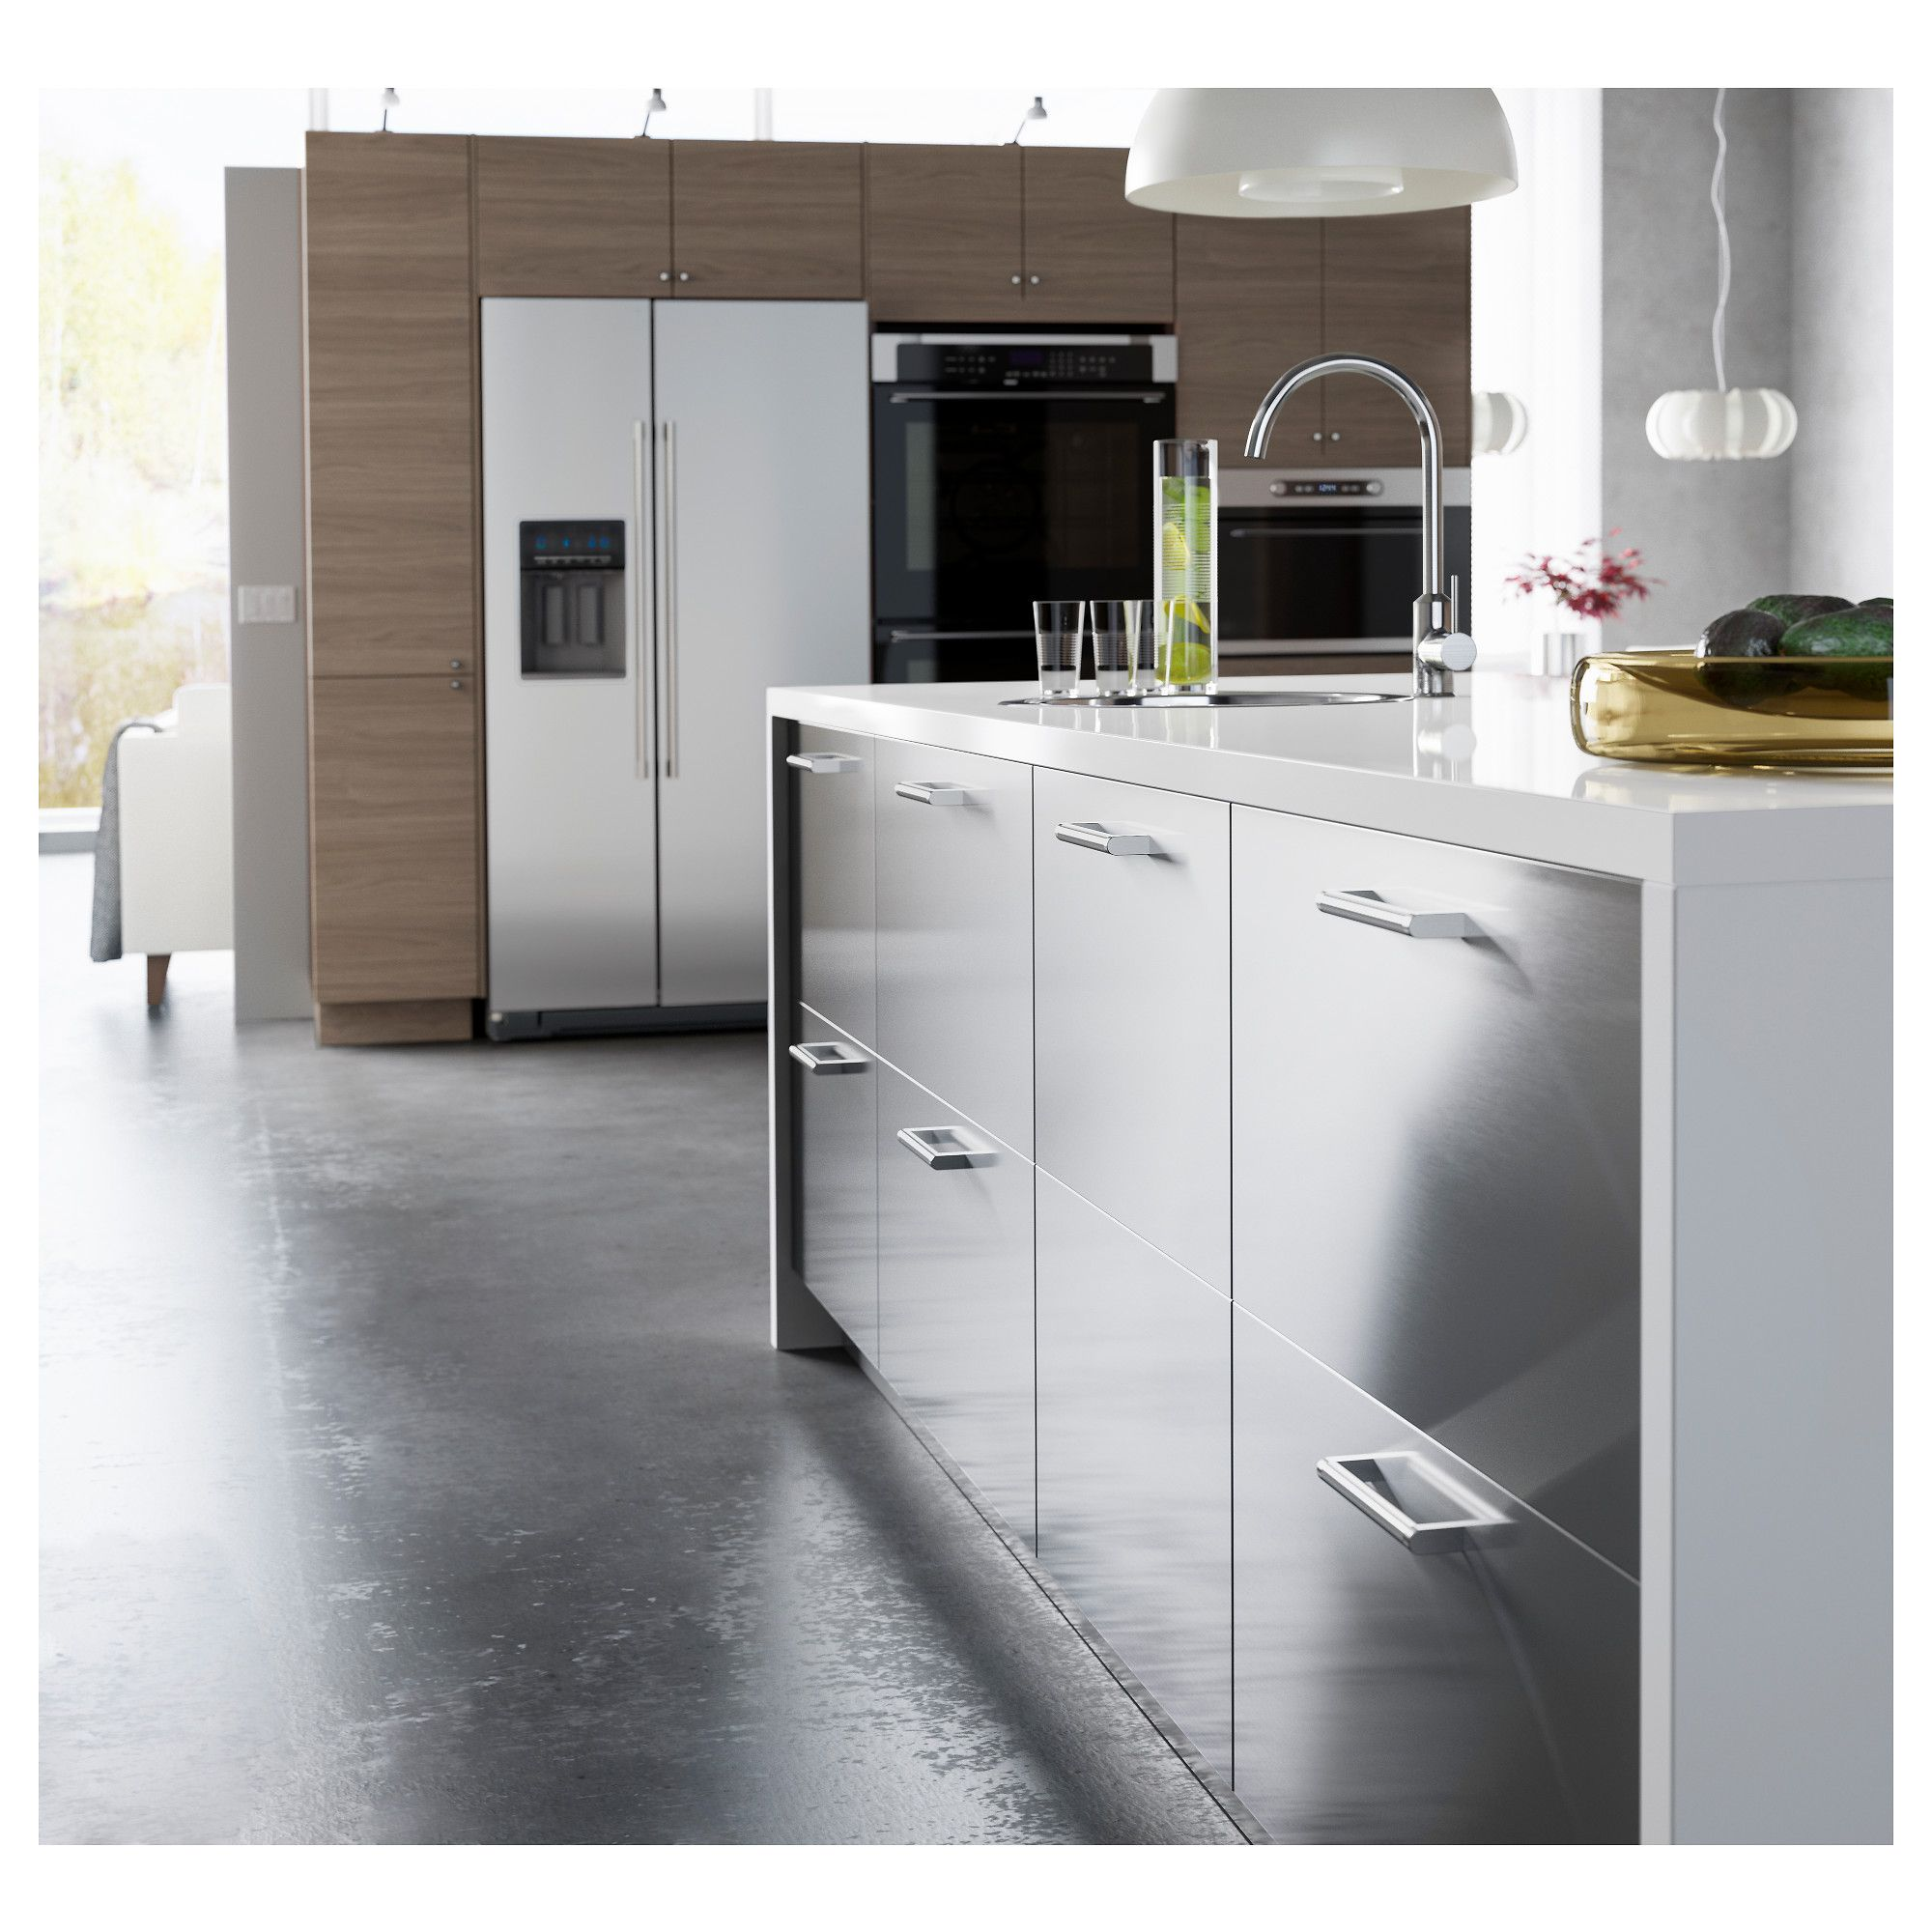 Ikea Grevsta Ikea - Grevsta Door Stainless Steel | Products | Cocinas